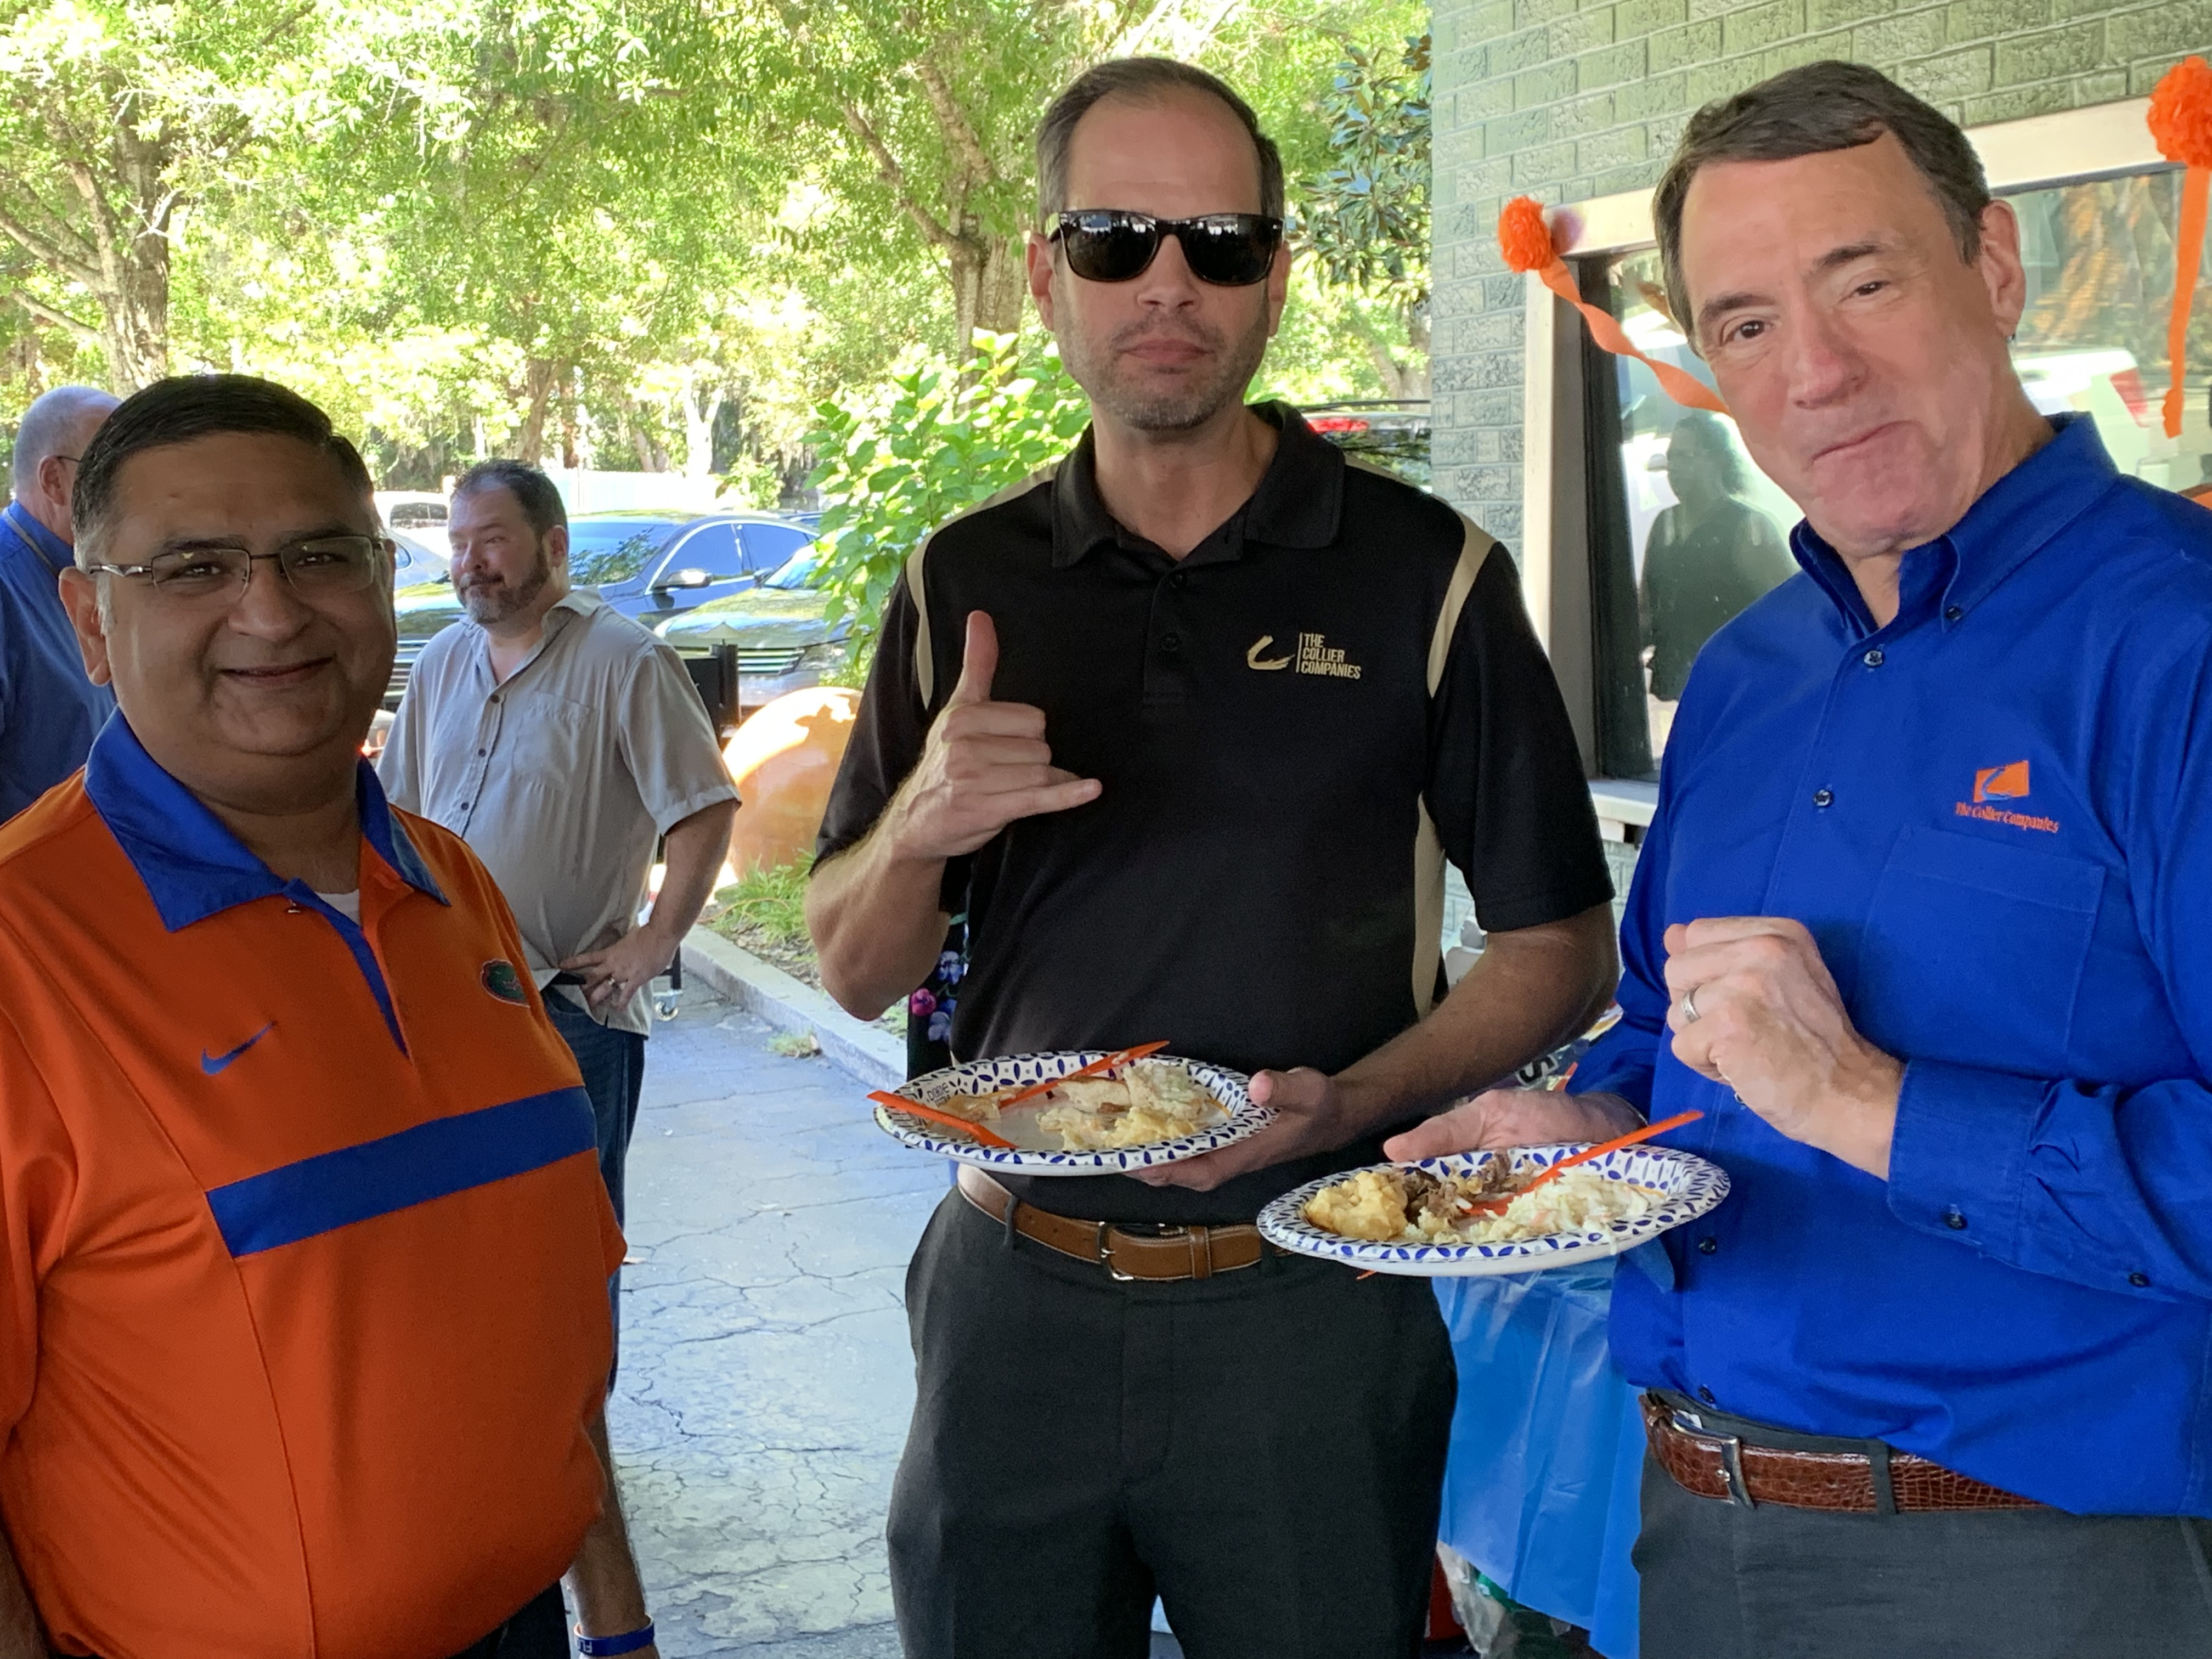 Team Members enjoy the company BBQ Luncheon